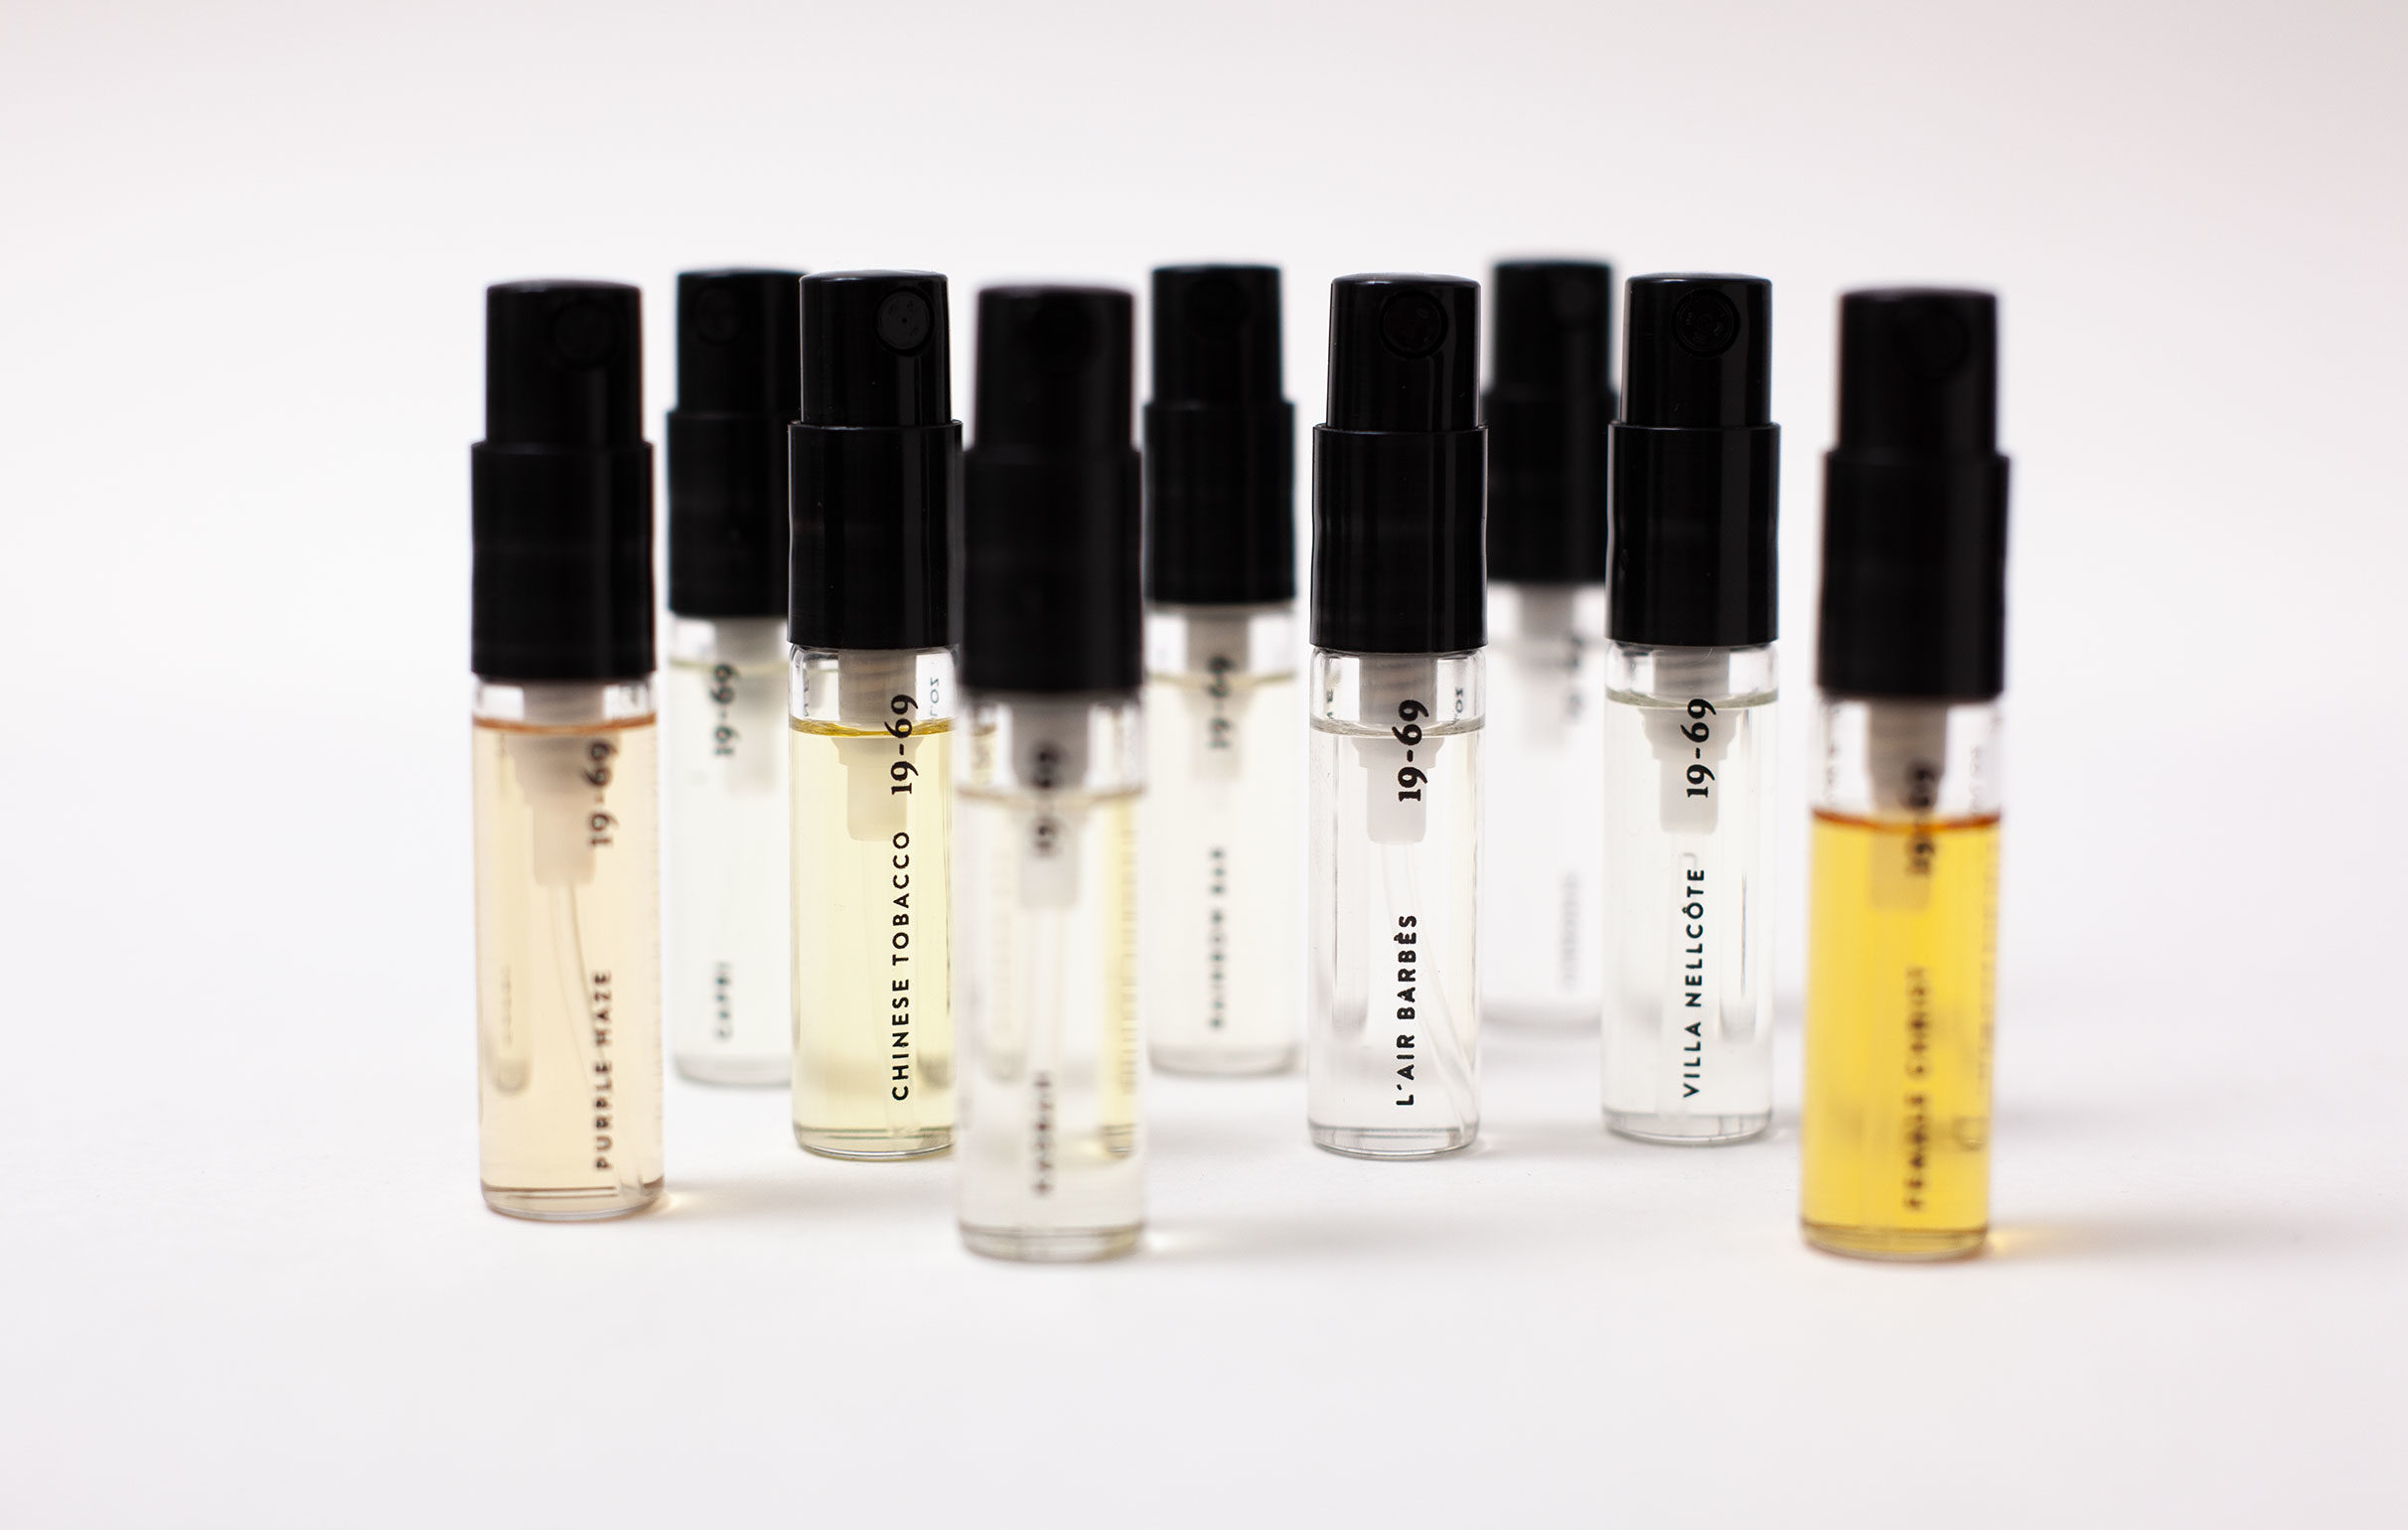 THE COLLECTION pocket size 2,5ml sprays